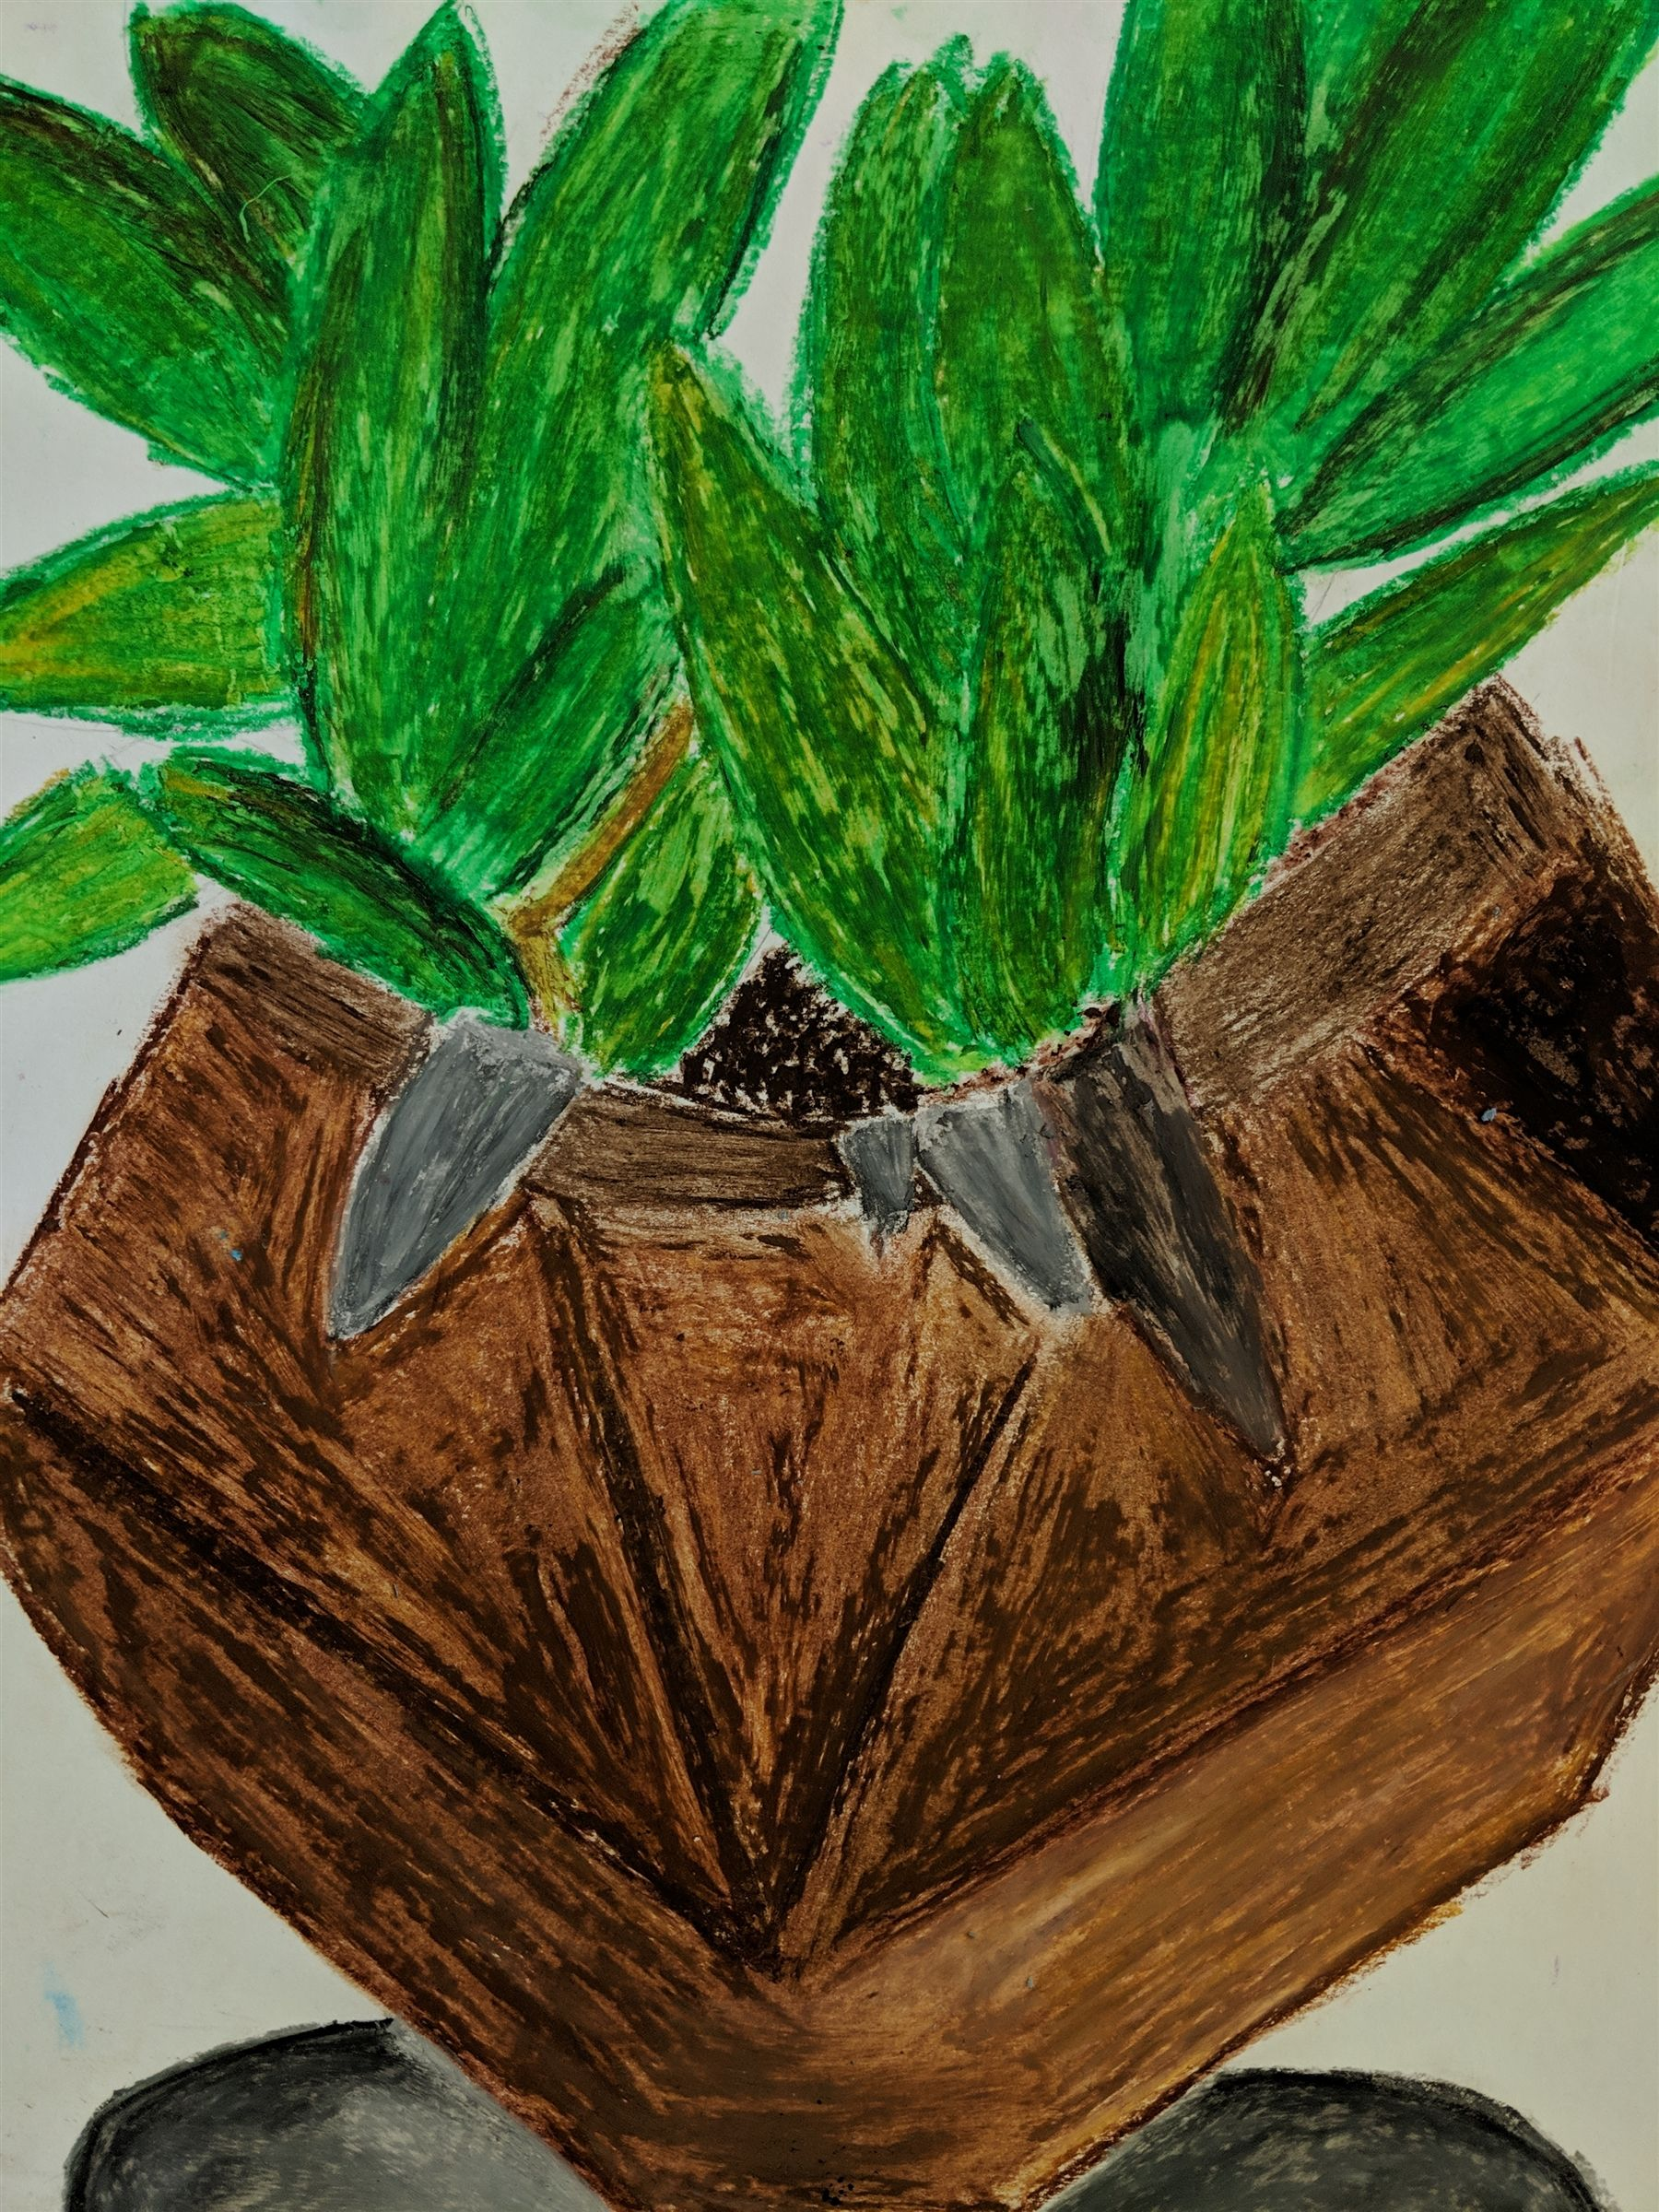 18 - Potted Plant